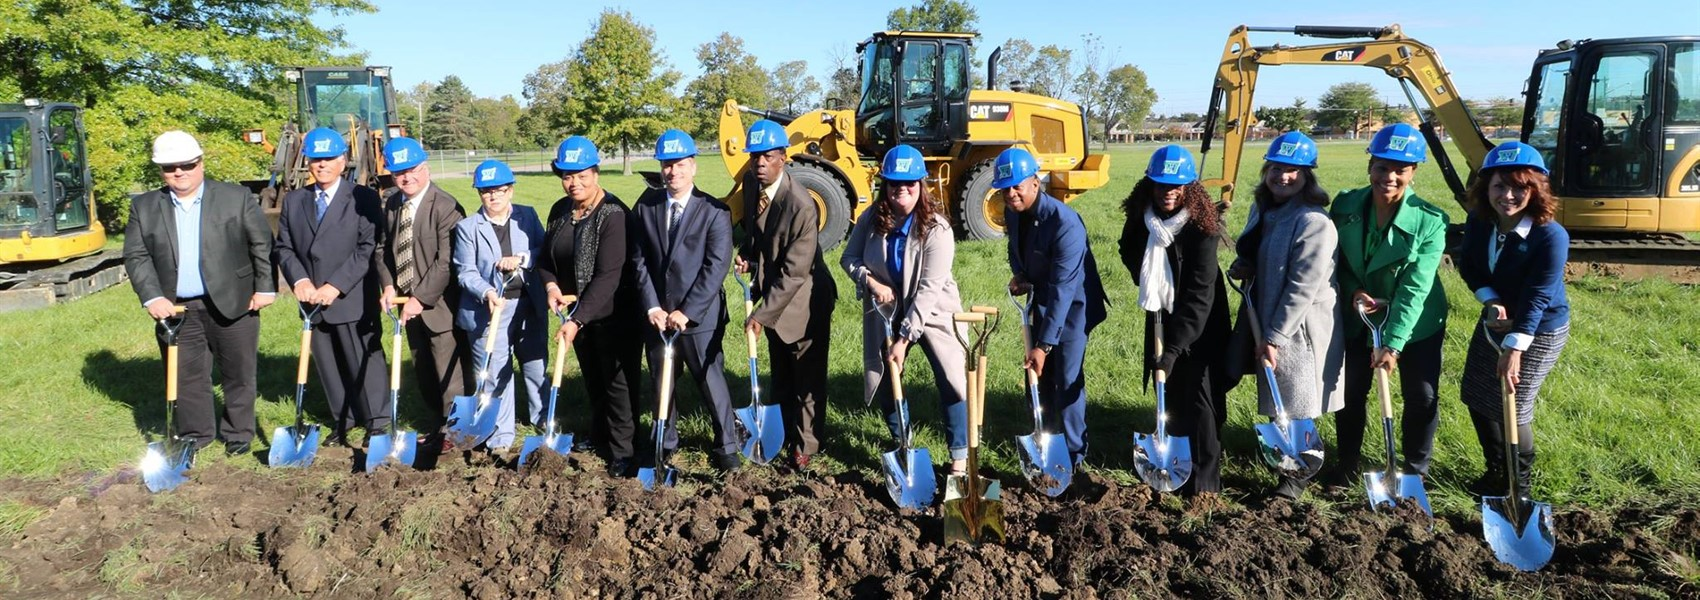 Ground breaking for the 7-12 campus